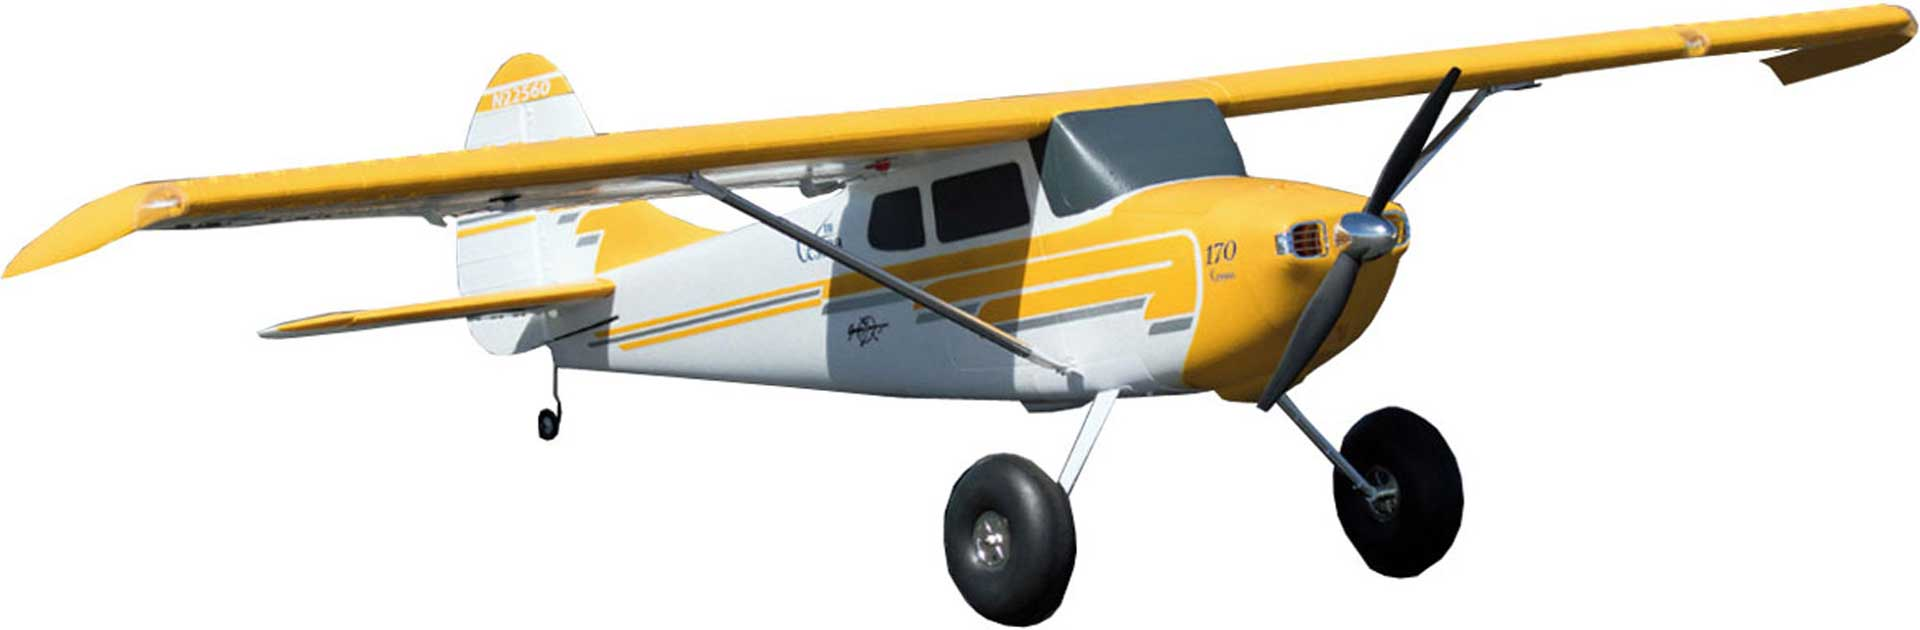 PREMIER AIRCRAFT Cessna 170 SUper Pnp with aura 8 and position lighting